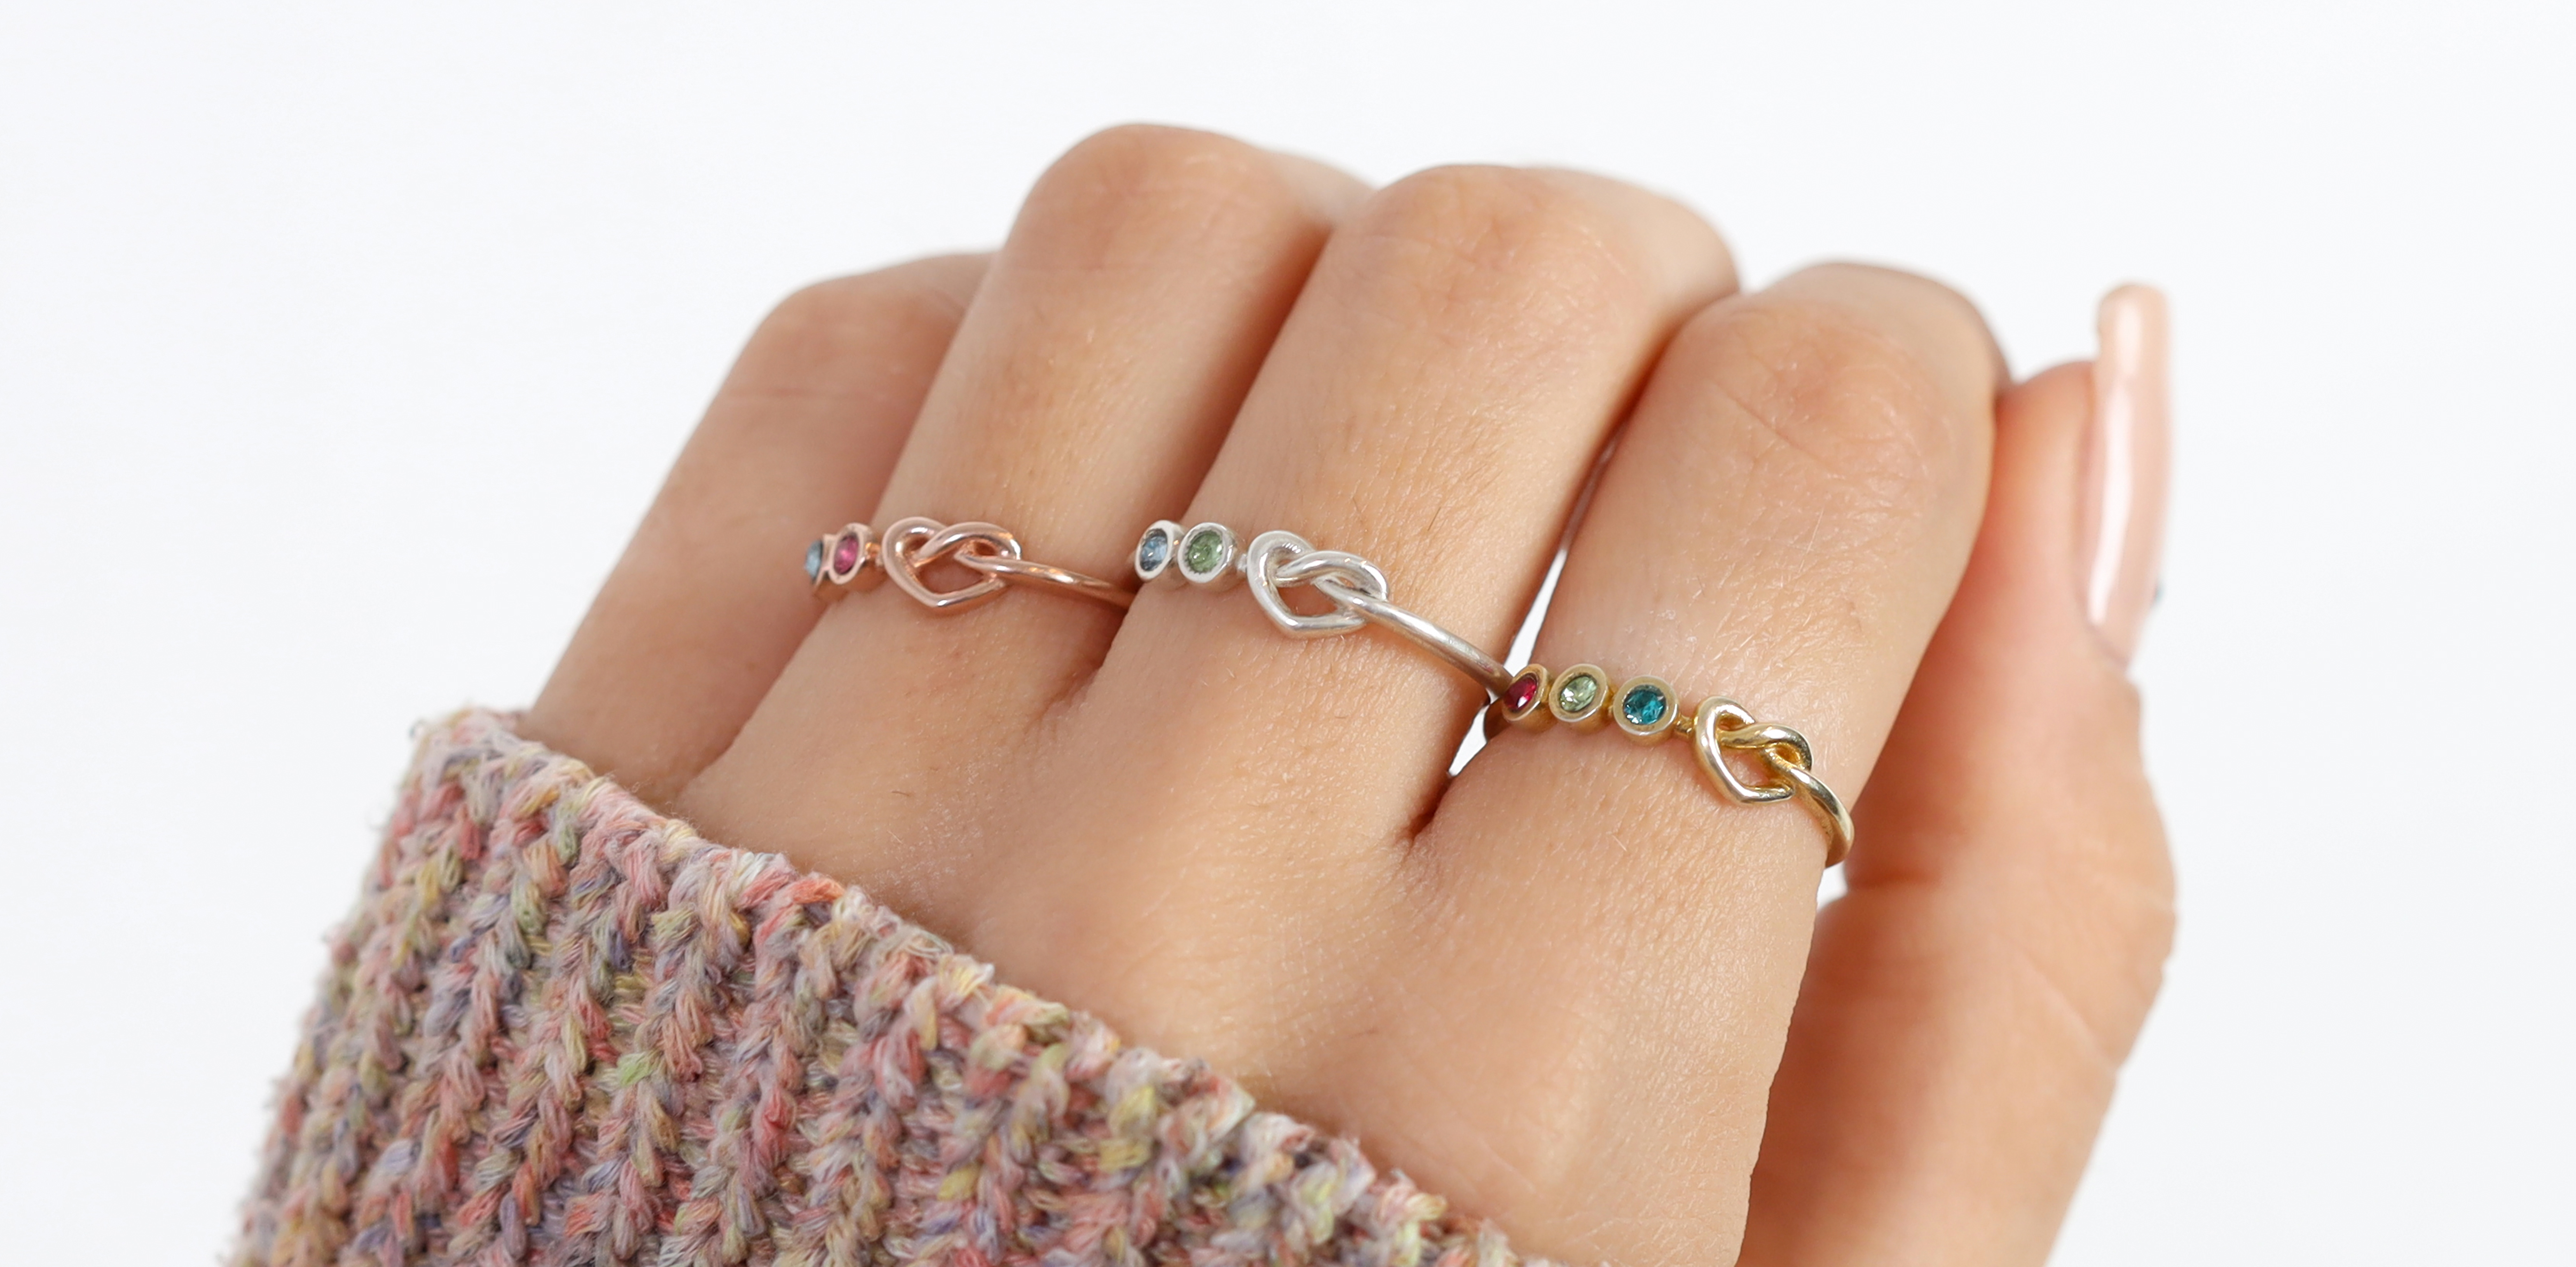 Ties of the Heart Birthstone Ring